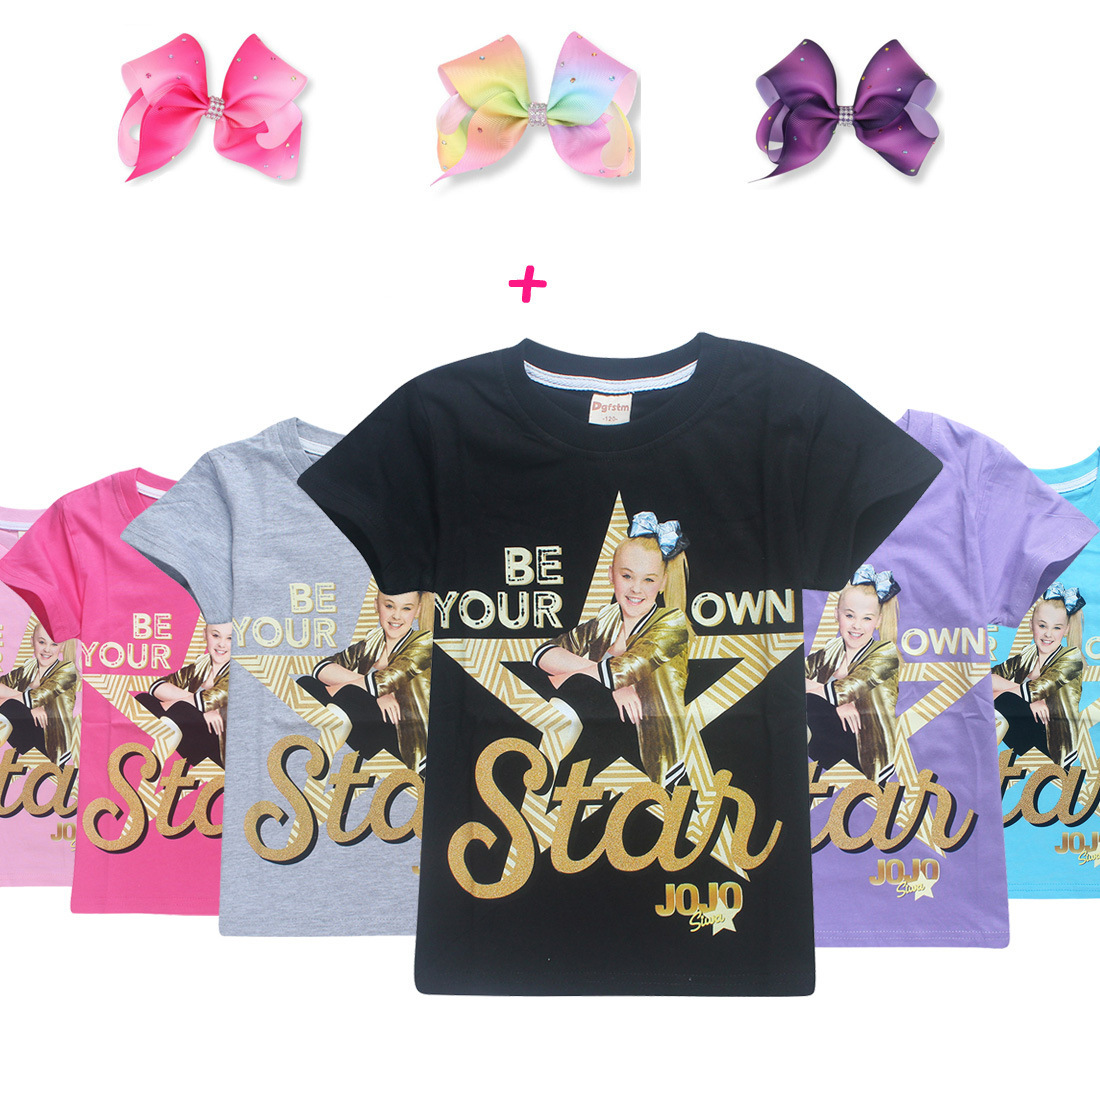 NWT JoJo Siwa Girls Top Short Sleeve T Shirt Tee Be Your Own Star Size  6-12